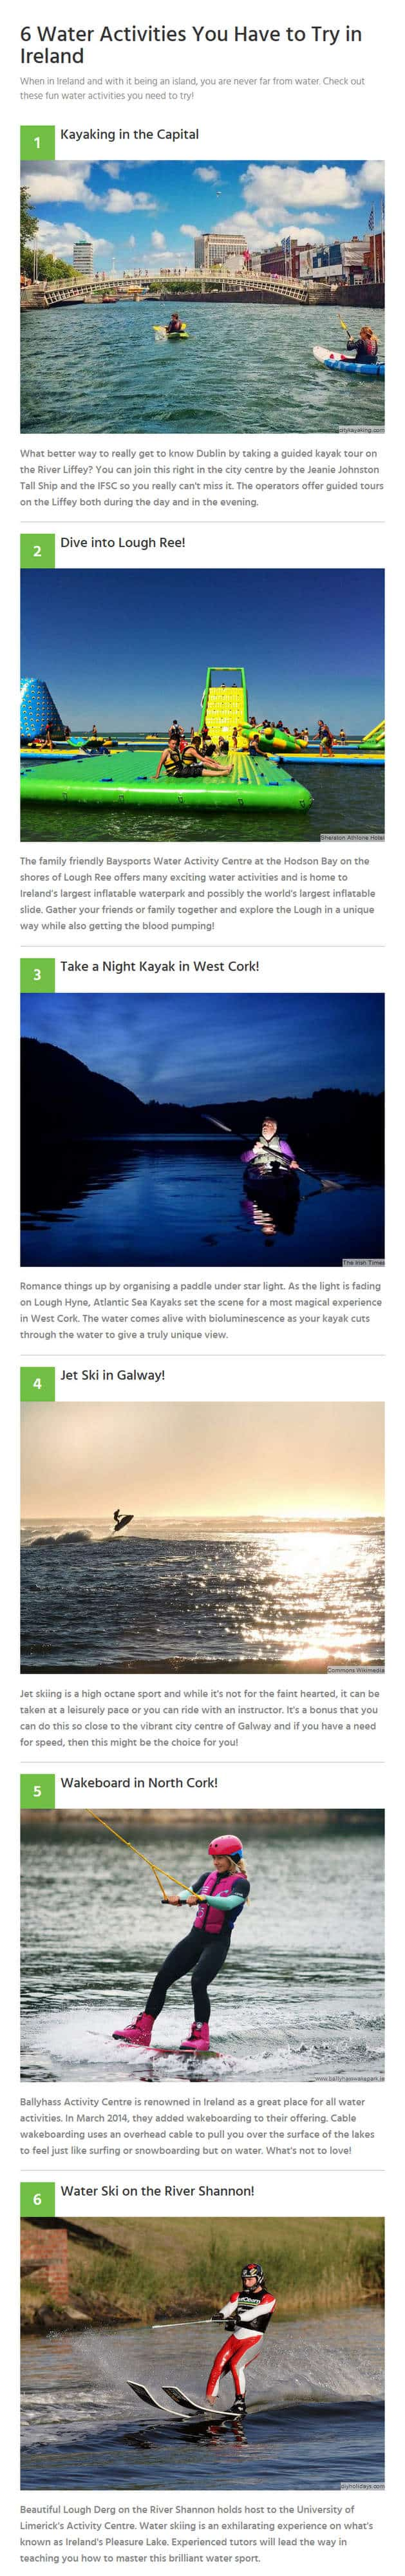 Water Activities in Ireland